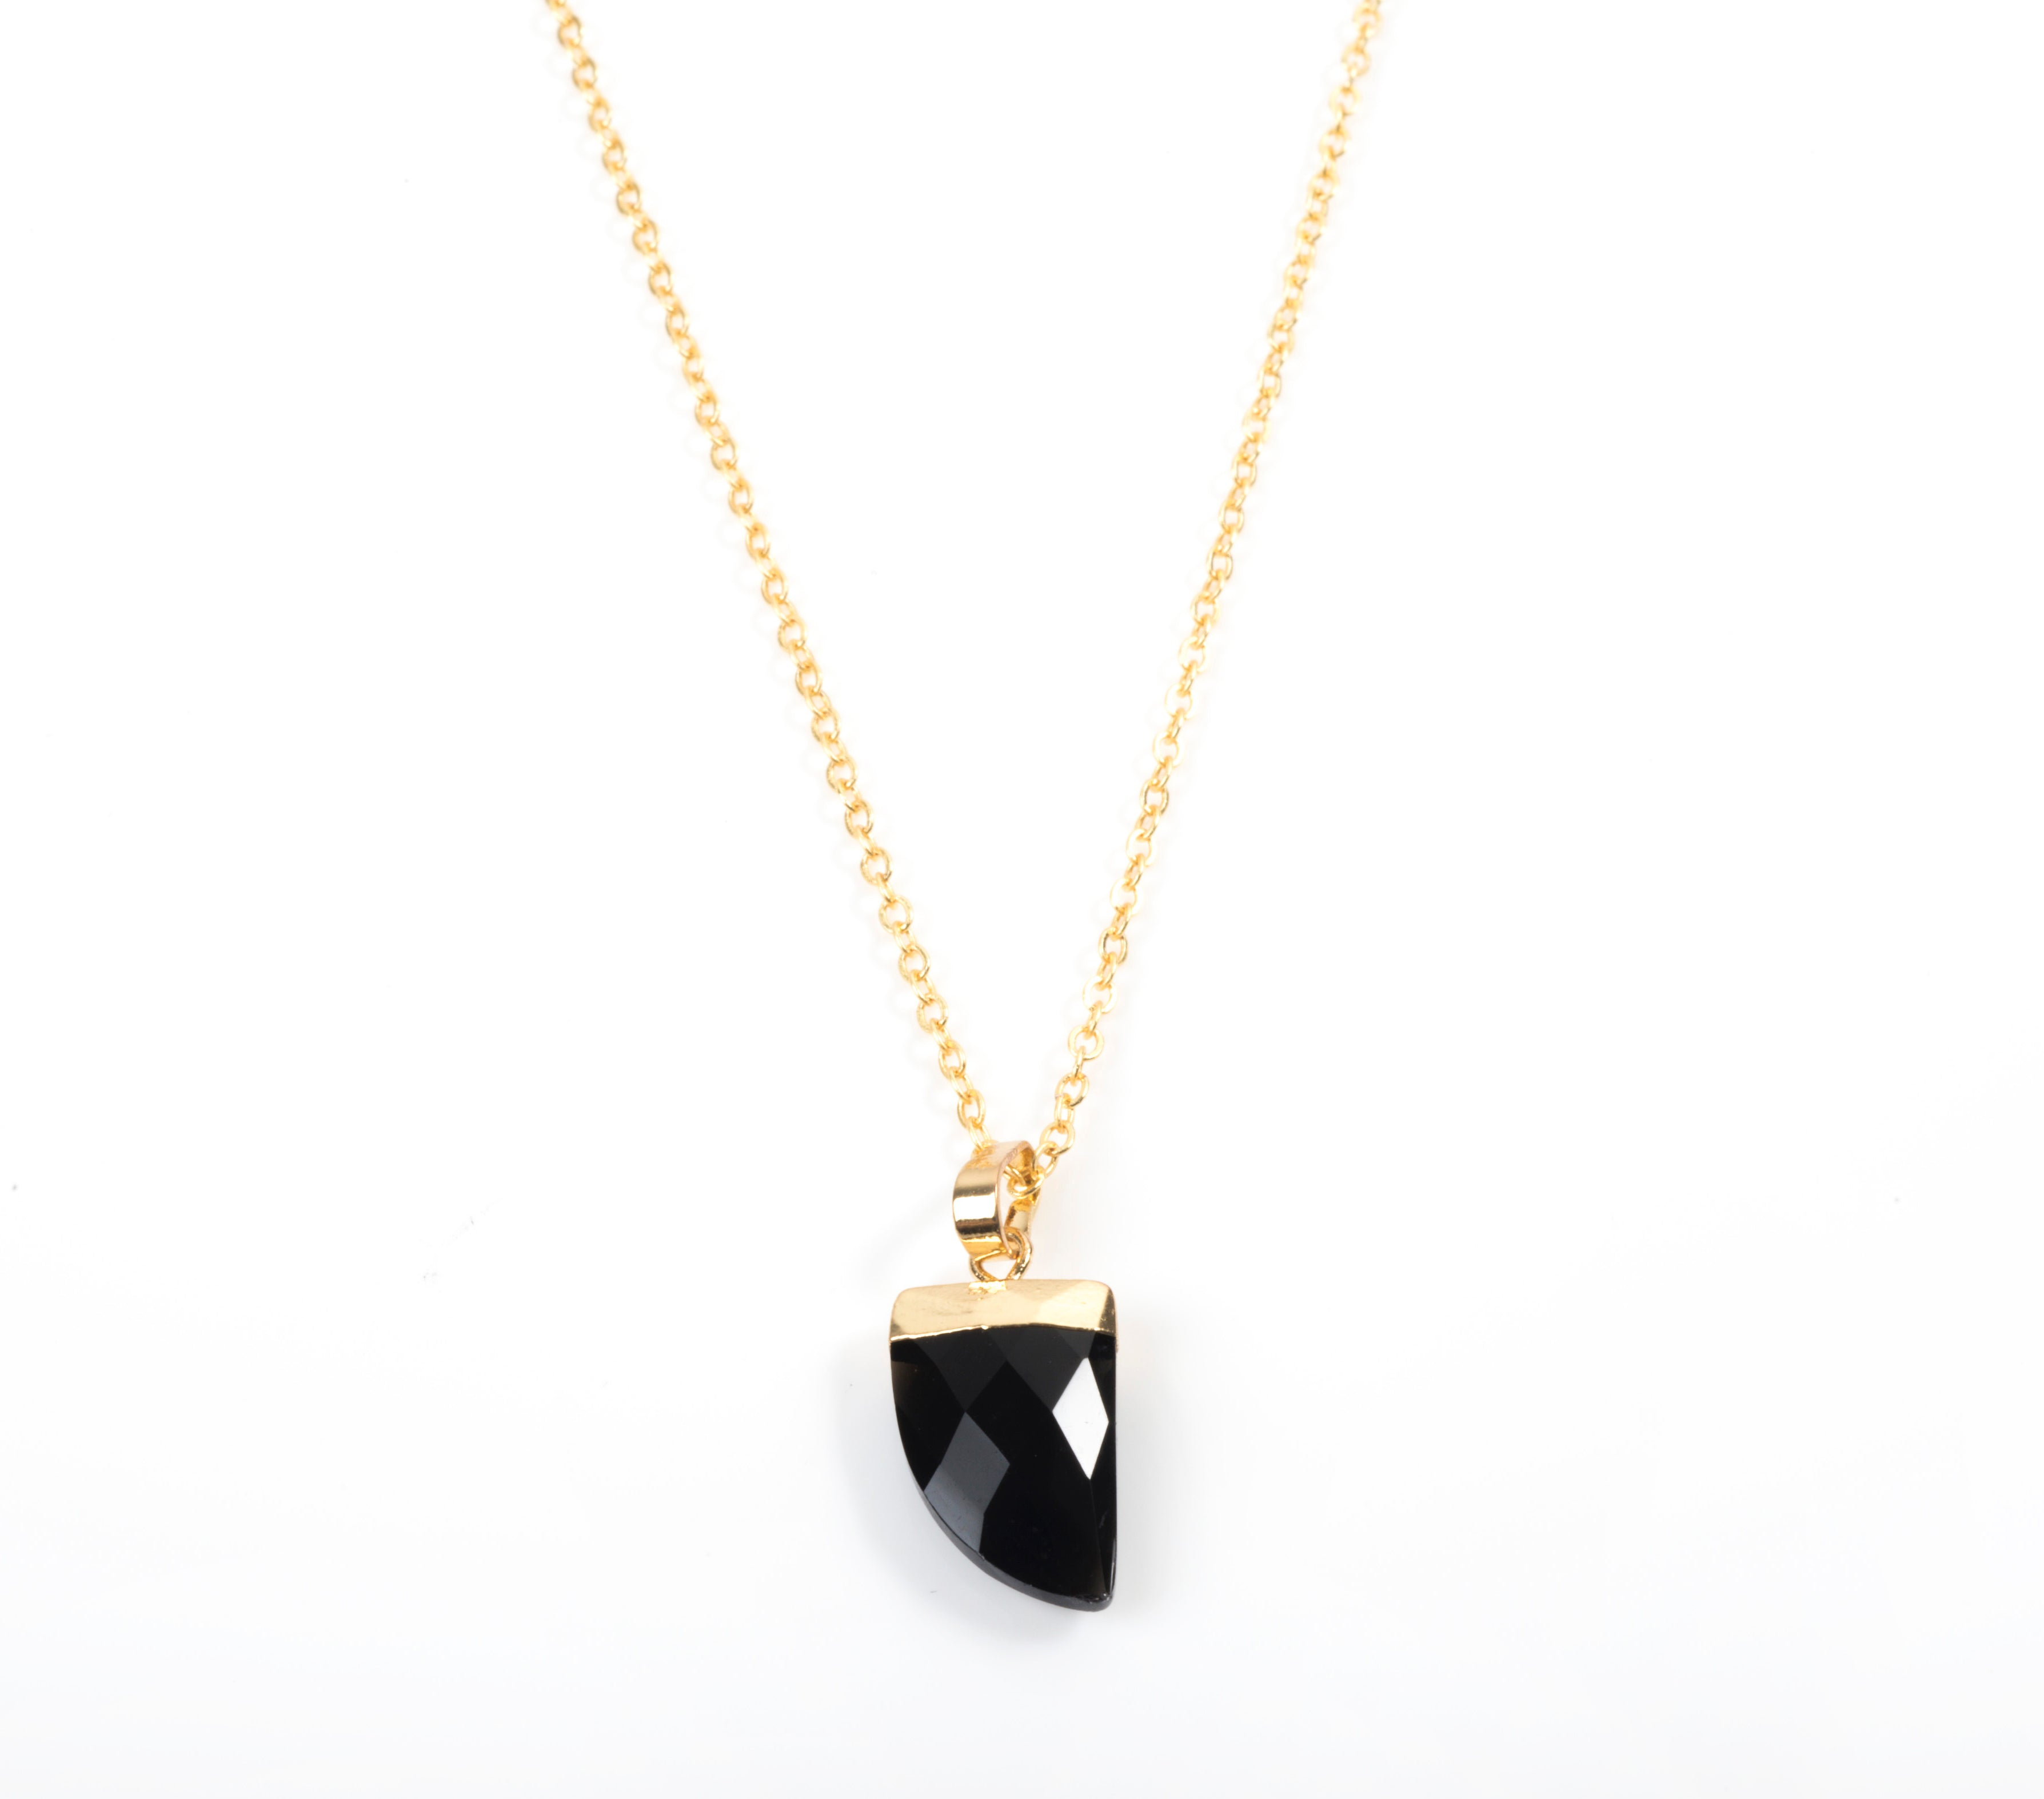 Black Onyx Claw Necklace in Yellow Gold by Colour Addict